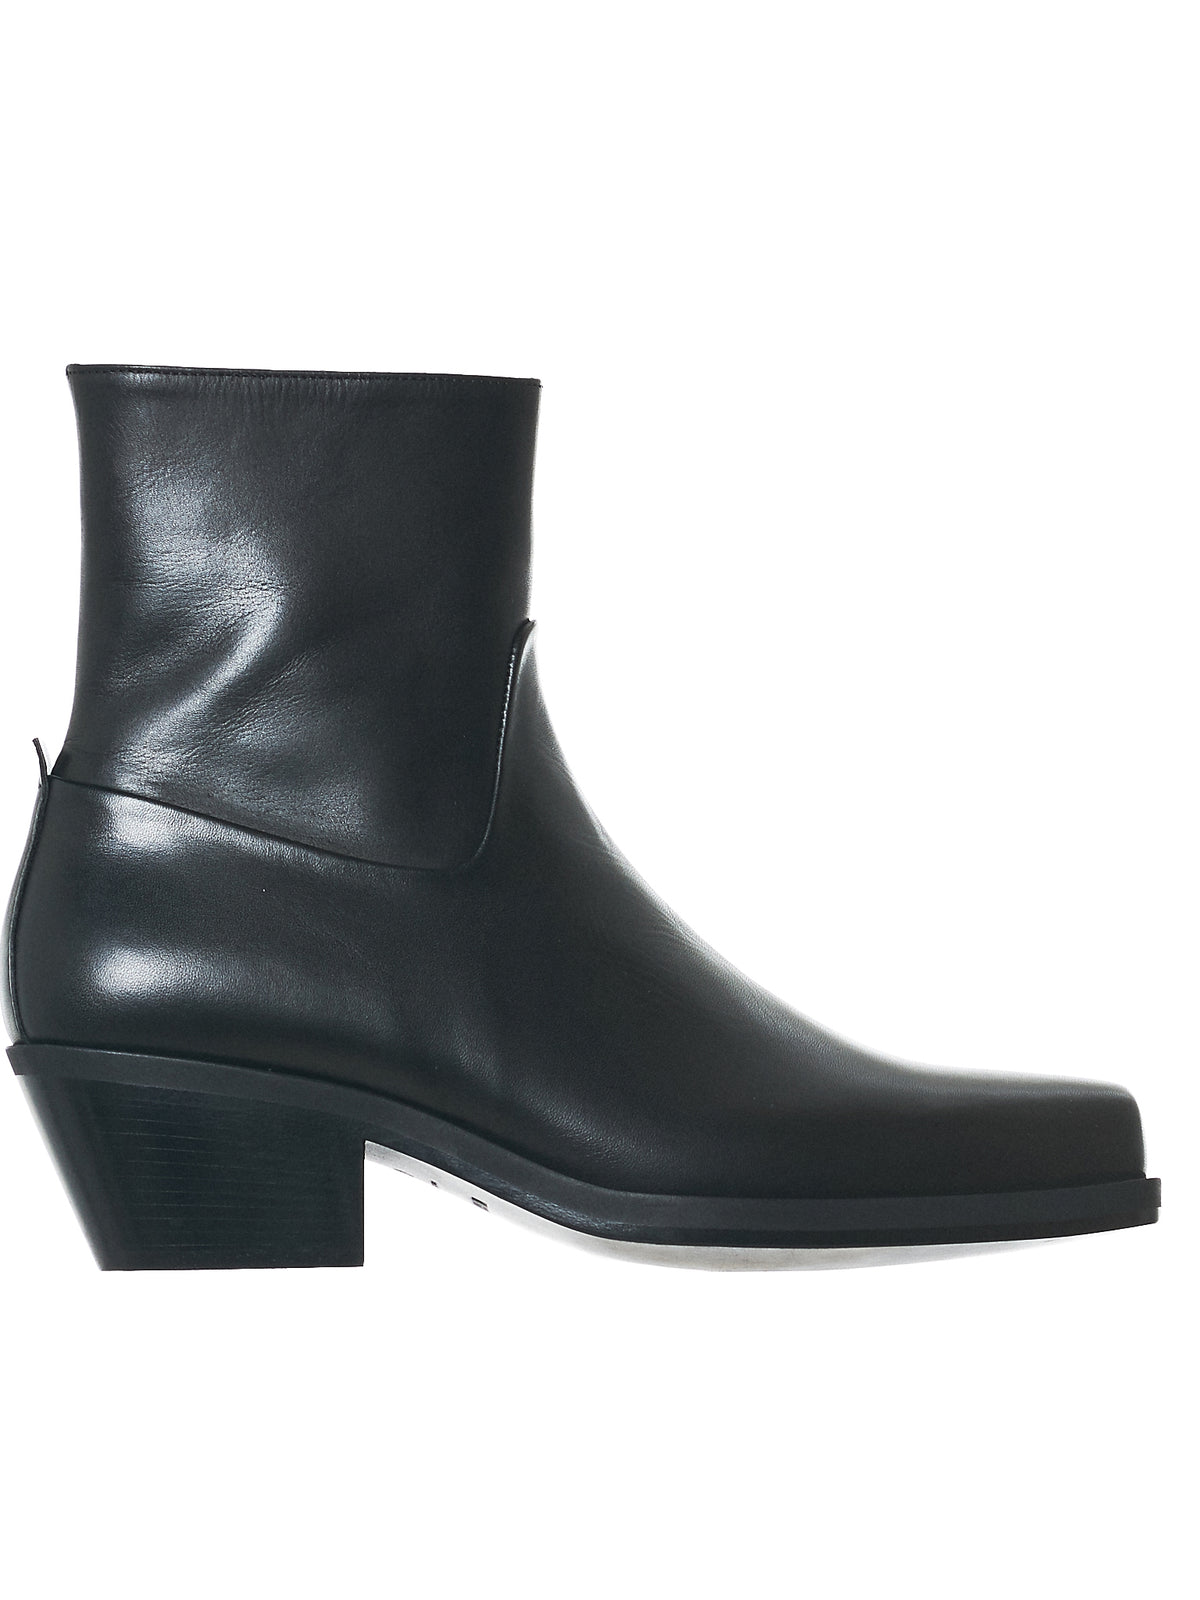 MISBHV Leather Boots - Hlorenzo Front